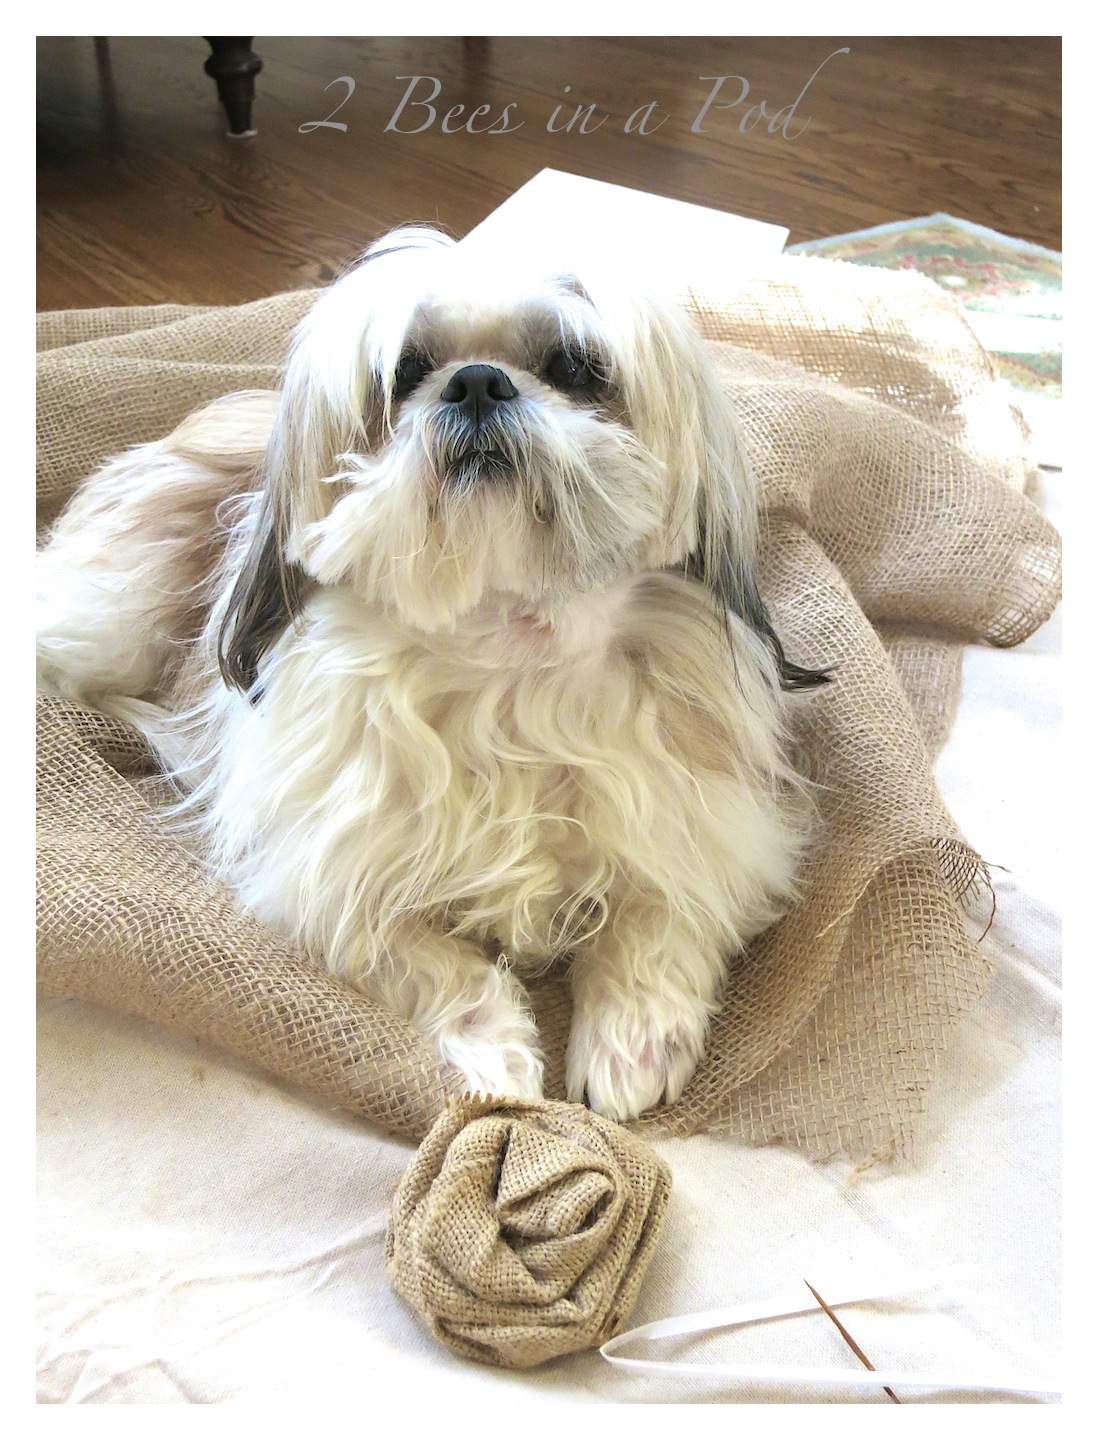 Sometimes my very cute shis tzu Starbuck likes to be in on the arts and crafts :) DIY burlap bulletin board. Made from a salvaged antique frame, burlap, foam board and batting. Cute decorated with vintage decor.